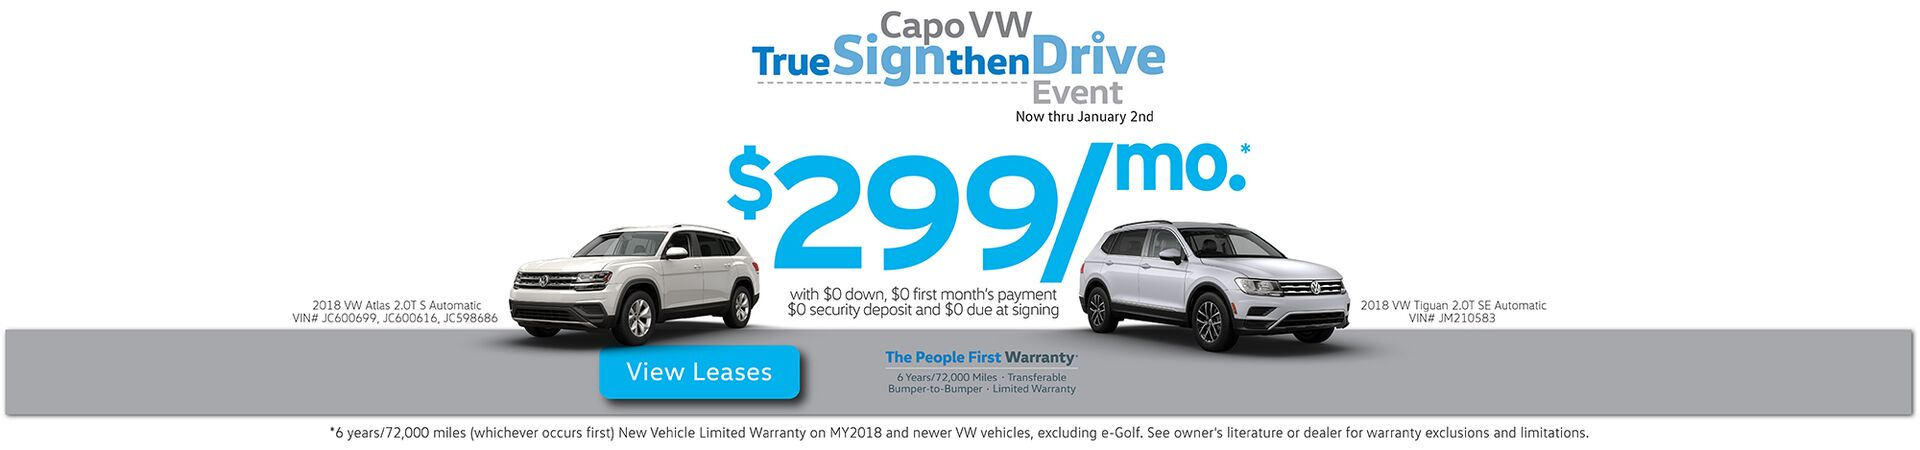 Capo VW Sign then Drive SUV leases starting at $299/mo. for 36 months with $0 due at siging